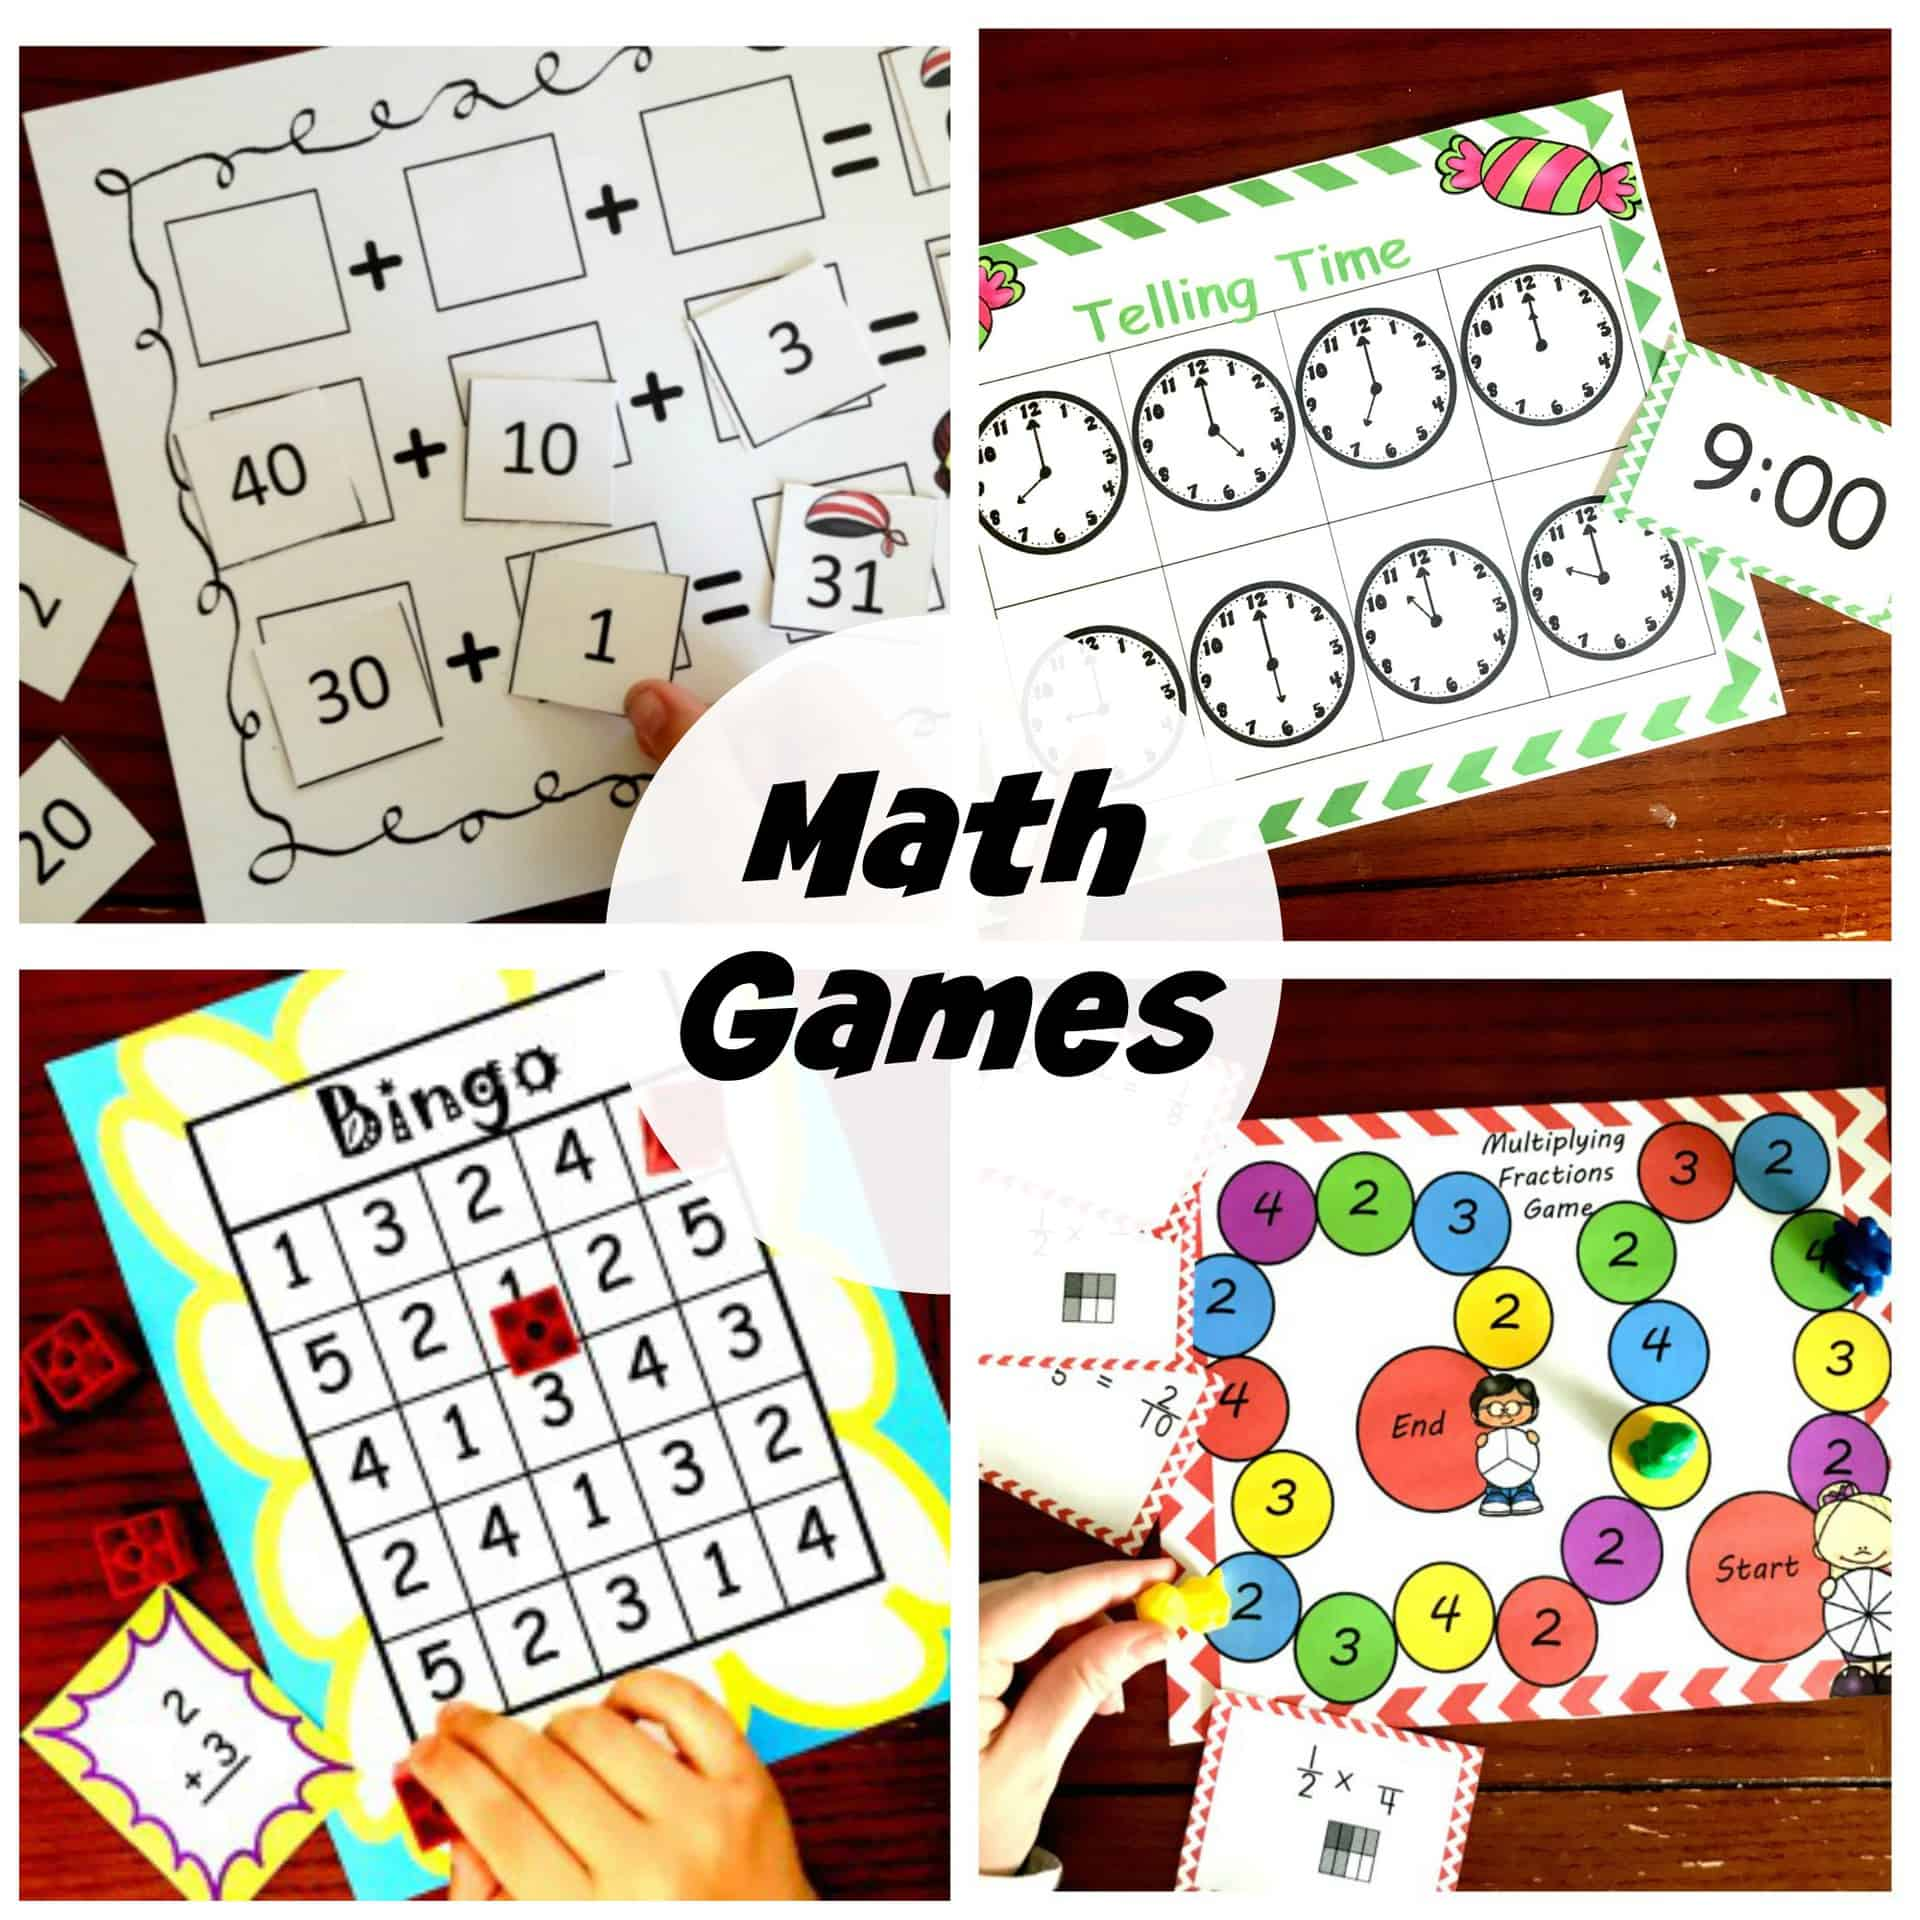 30 Easy Math Games For Practicing Math Concepts And Skills